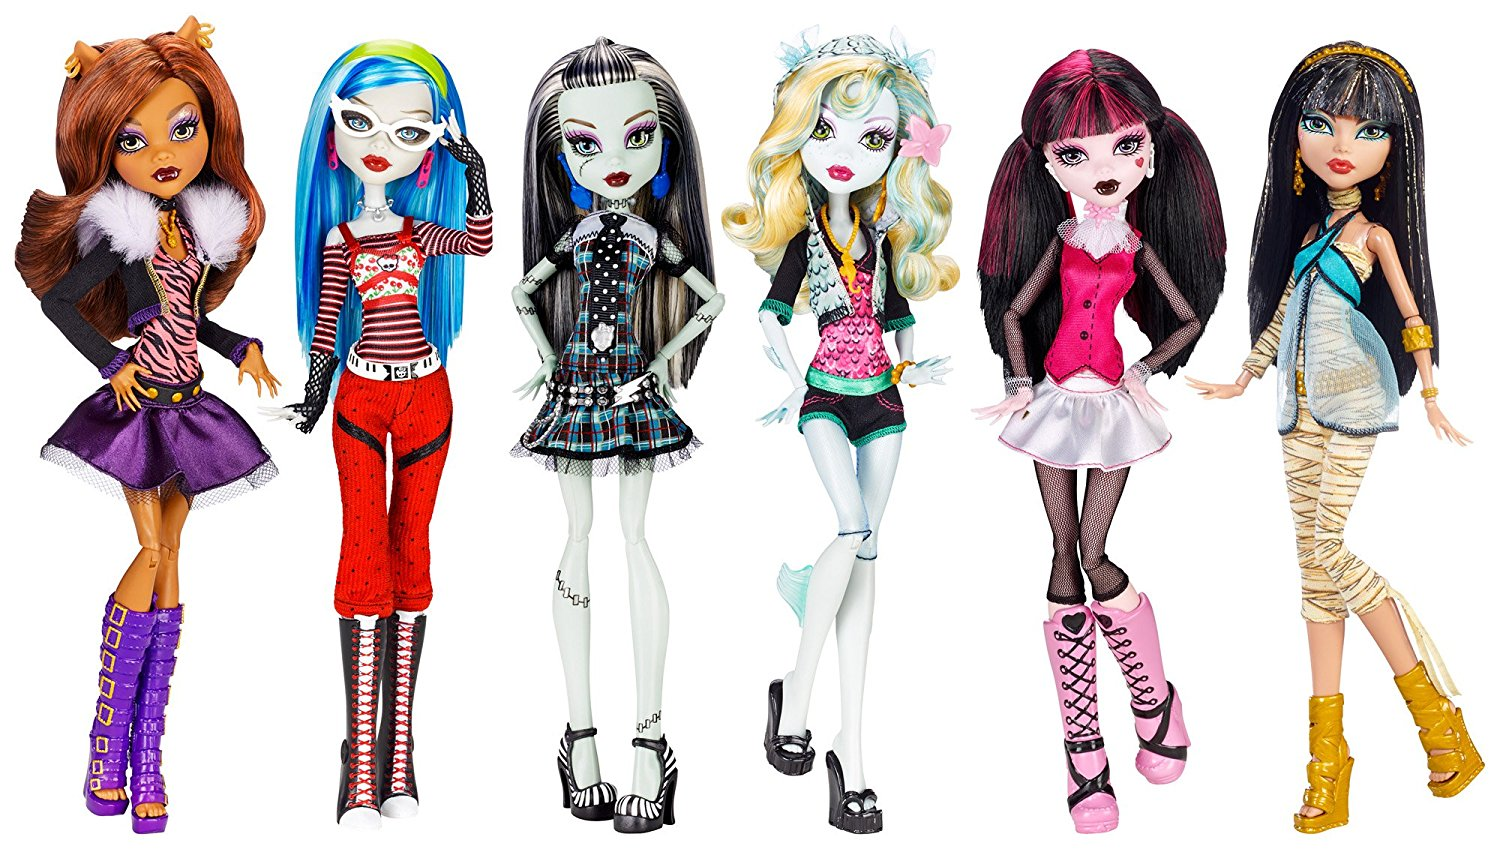 10 best monster high dolls  2019  a true girly toy